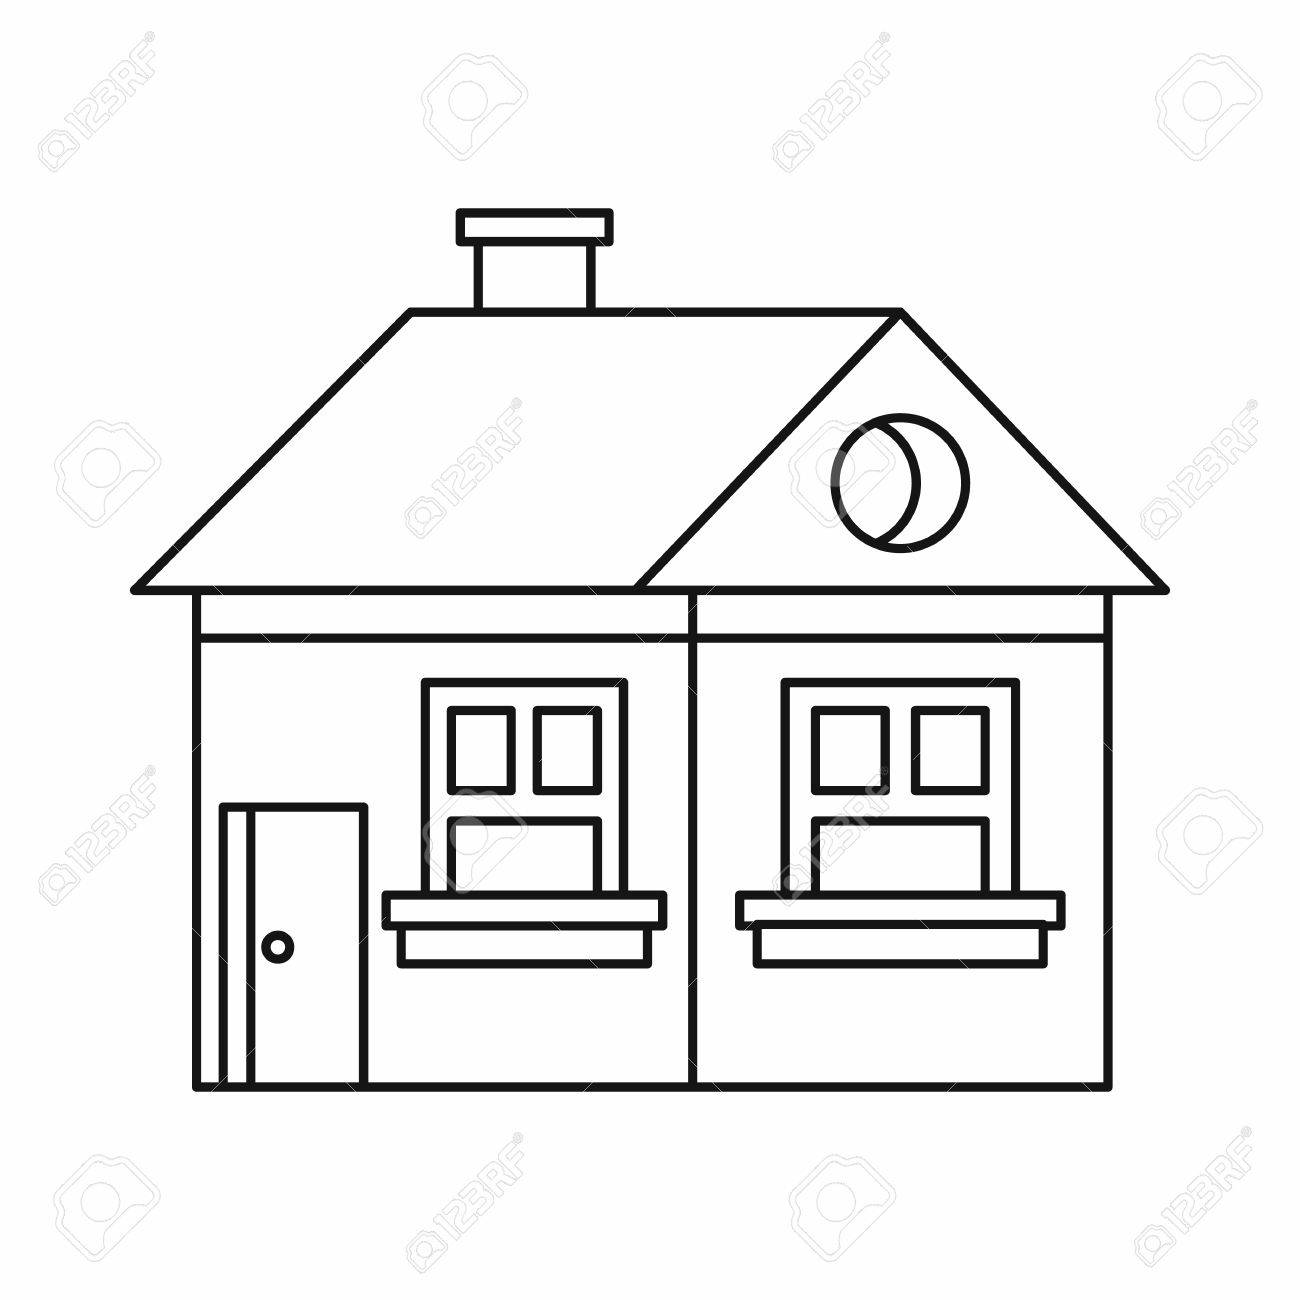 Large Single Storey House Icon In Outline Style Isolated On White Background Construction Symbol